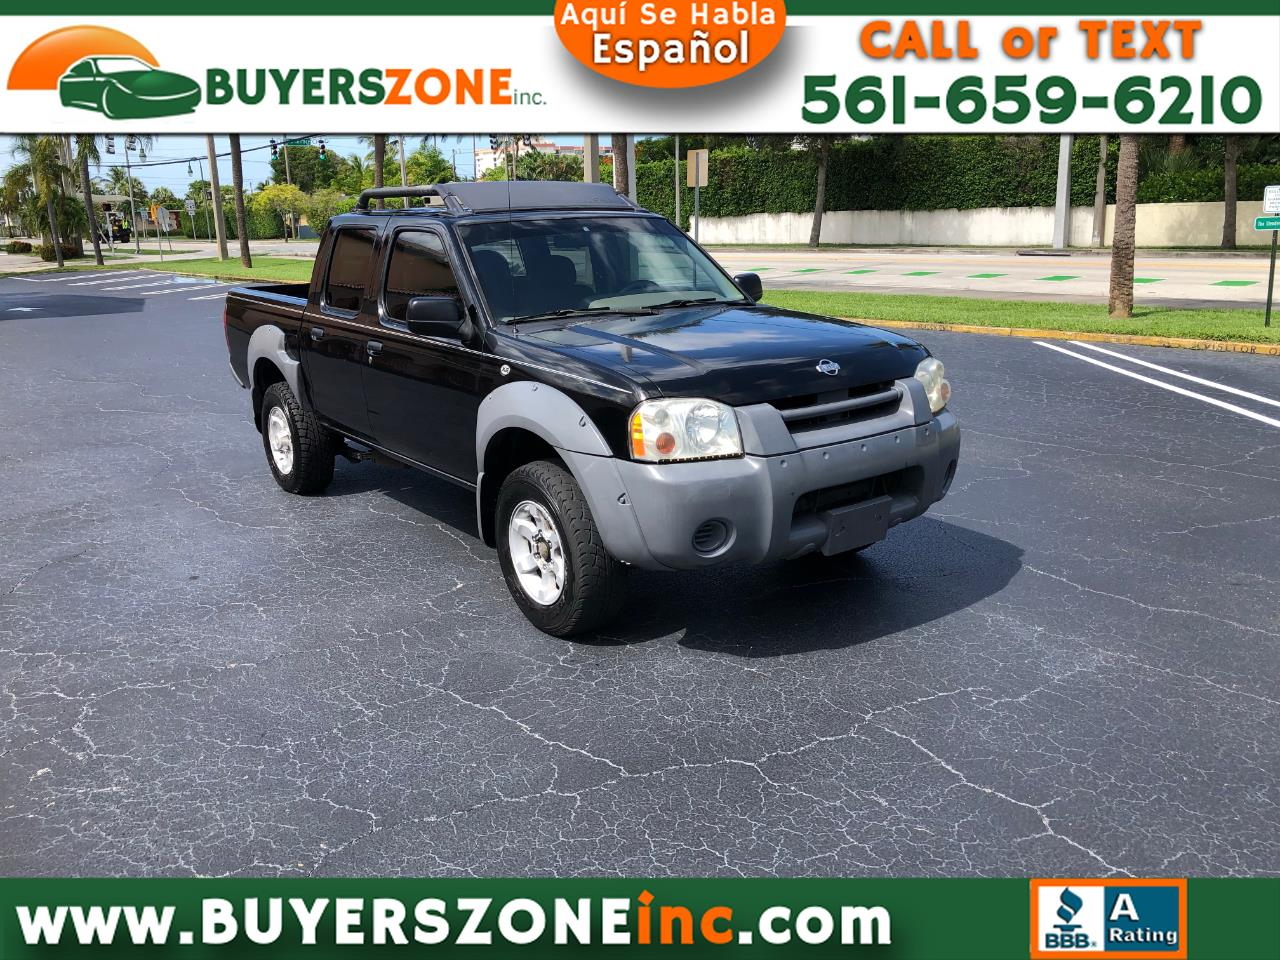 2001 Nissan Frontier 2WD XE Crew Cab V6 Auto